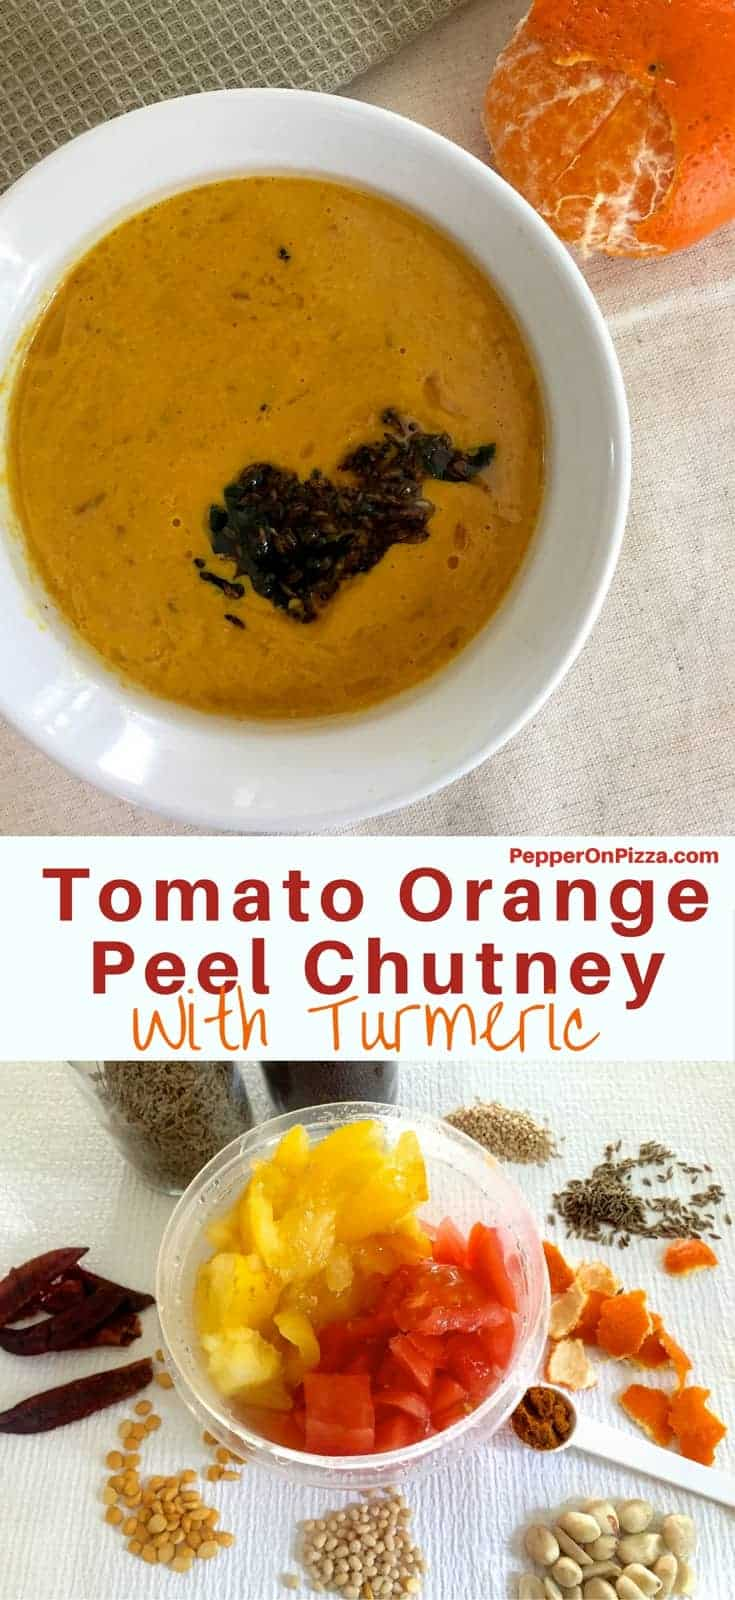 Bright mustard coloured tomato peanut orange peel chutney Andhra Style in a white bowl, with a tempering of chili and cumin on top